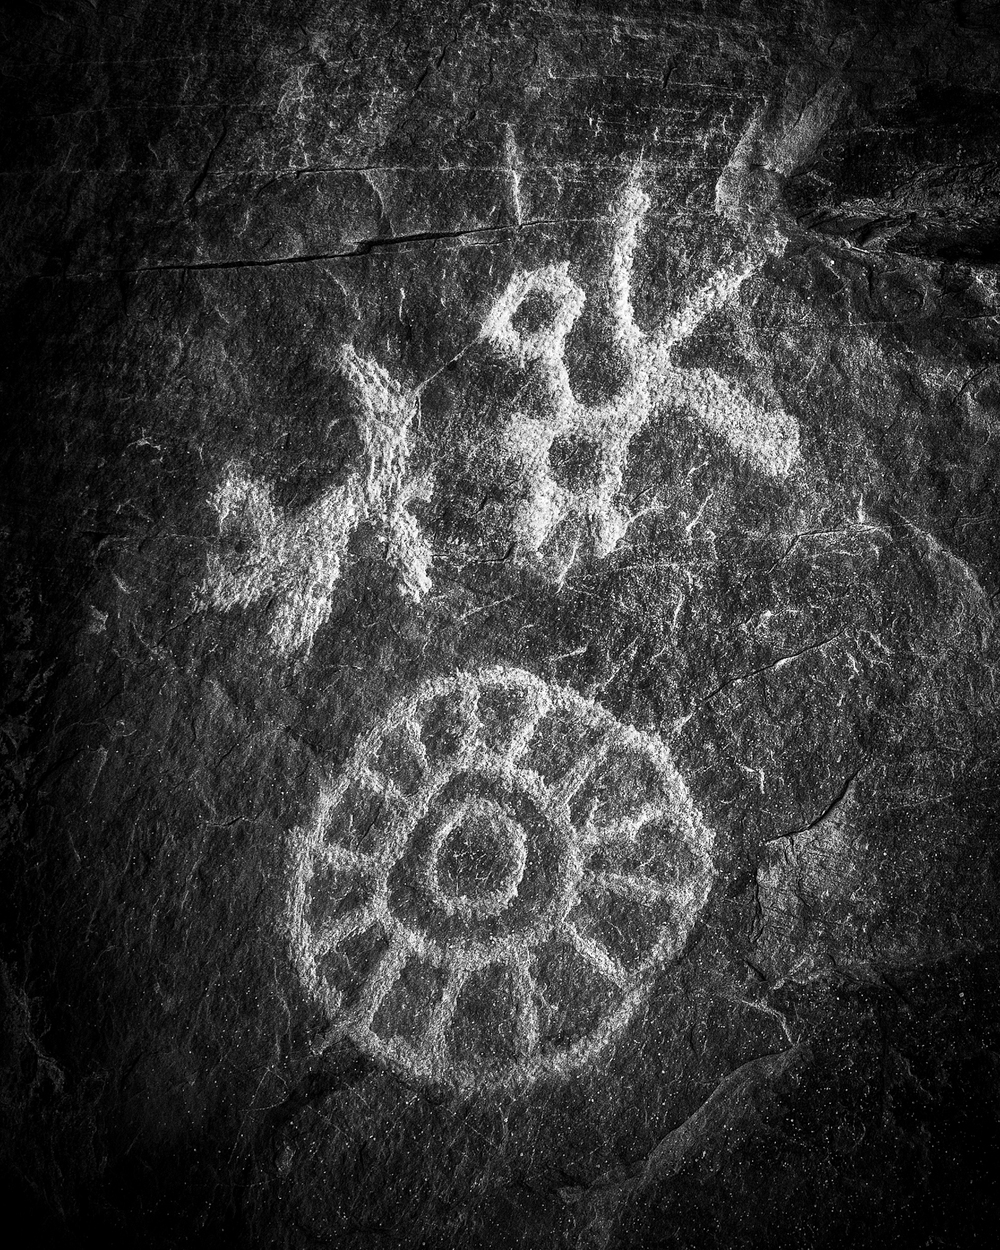 A petroglyph or a pictograph?